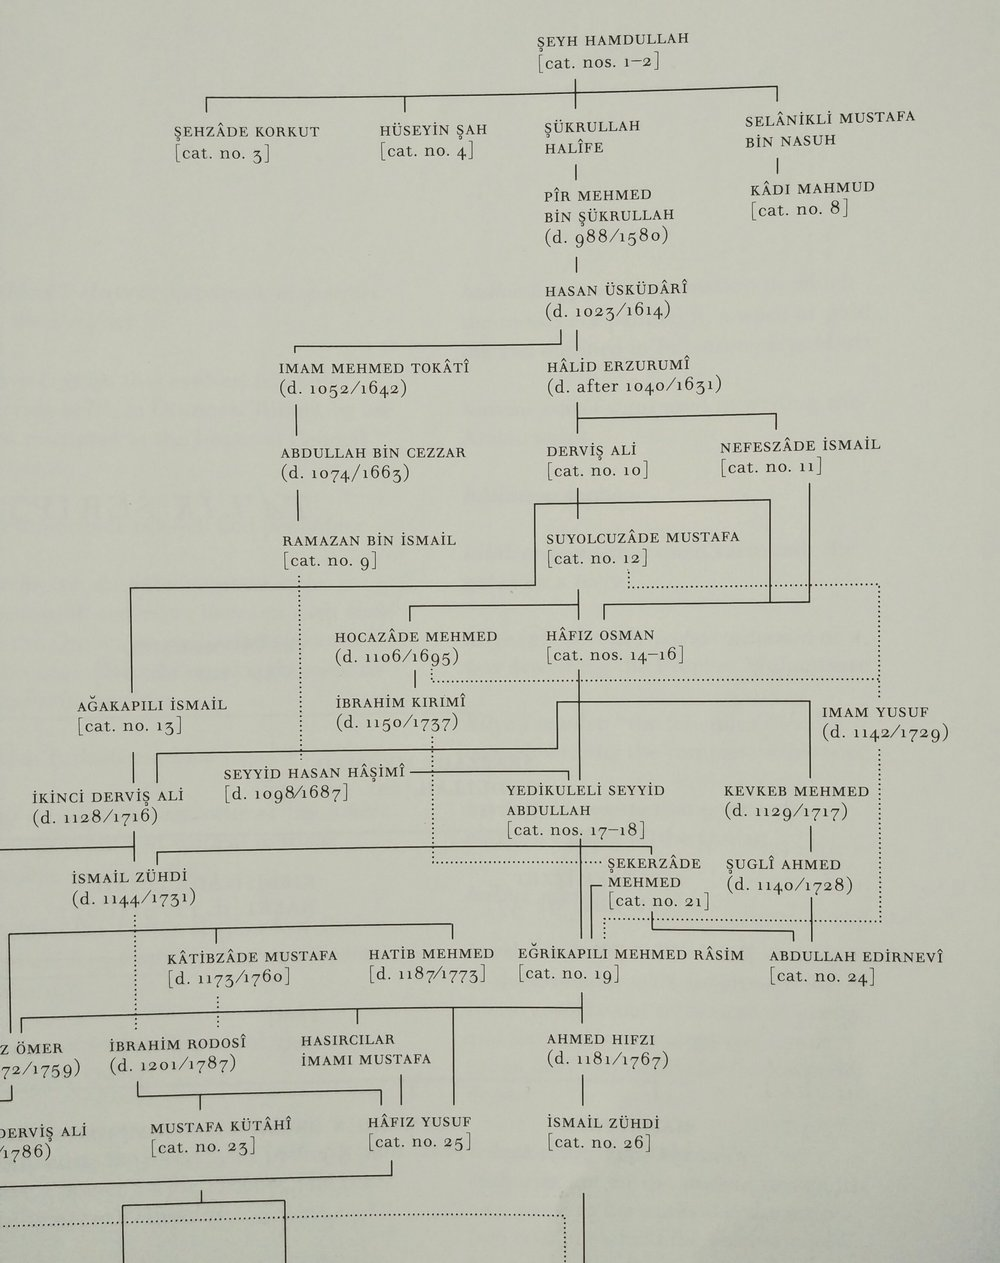 Genealogy of Ottoman calligraphers (source: Letters in Gold)